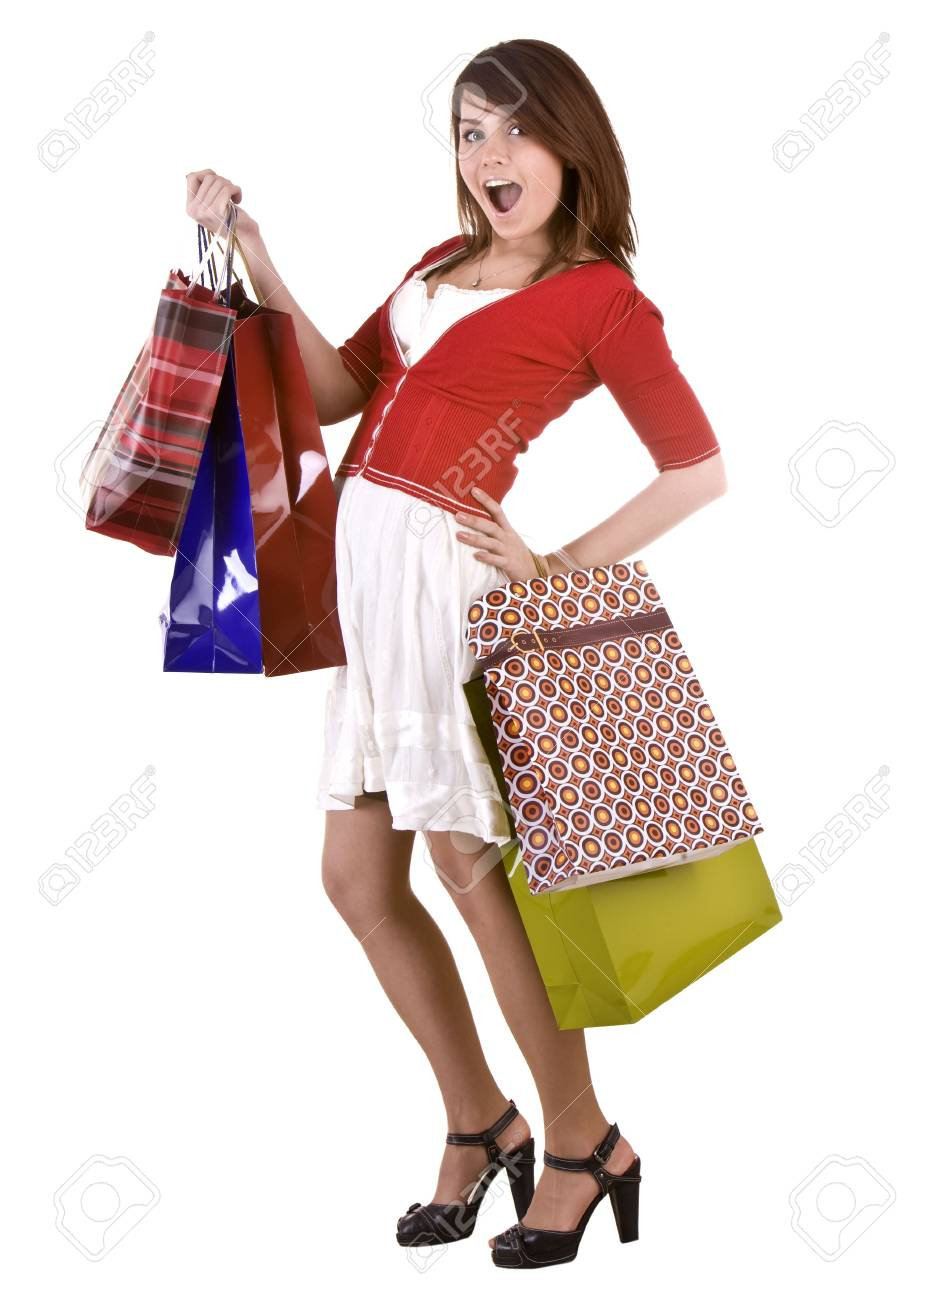 Young girl with gift bag. Isolated. Stock Photo - 5554313